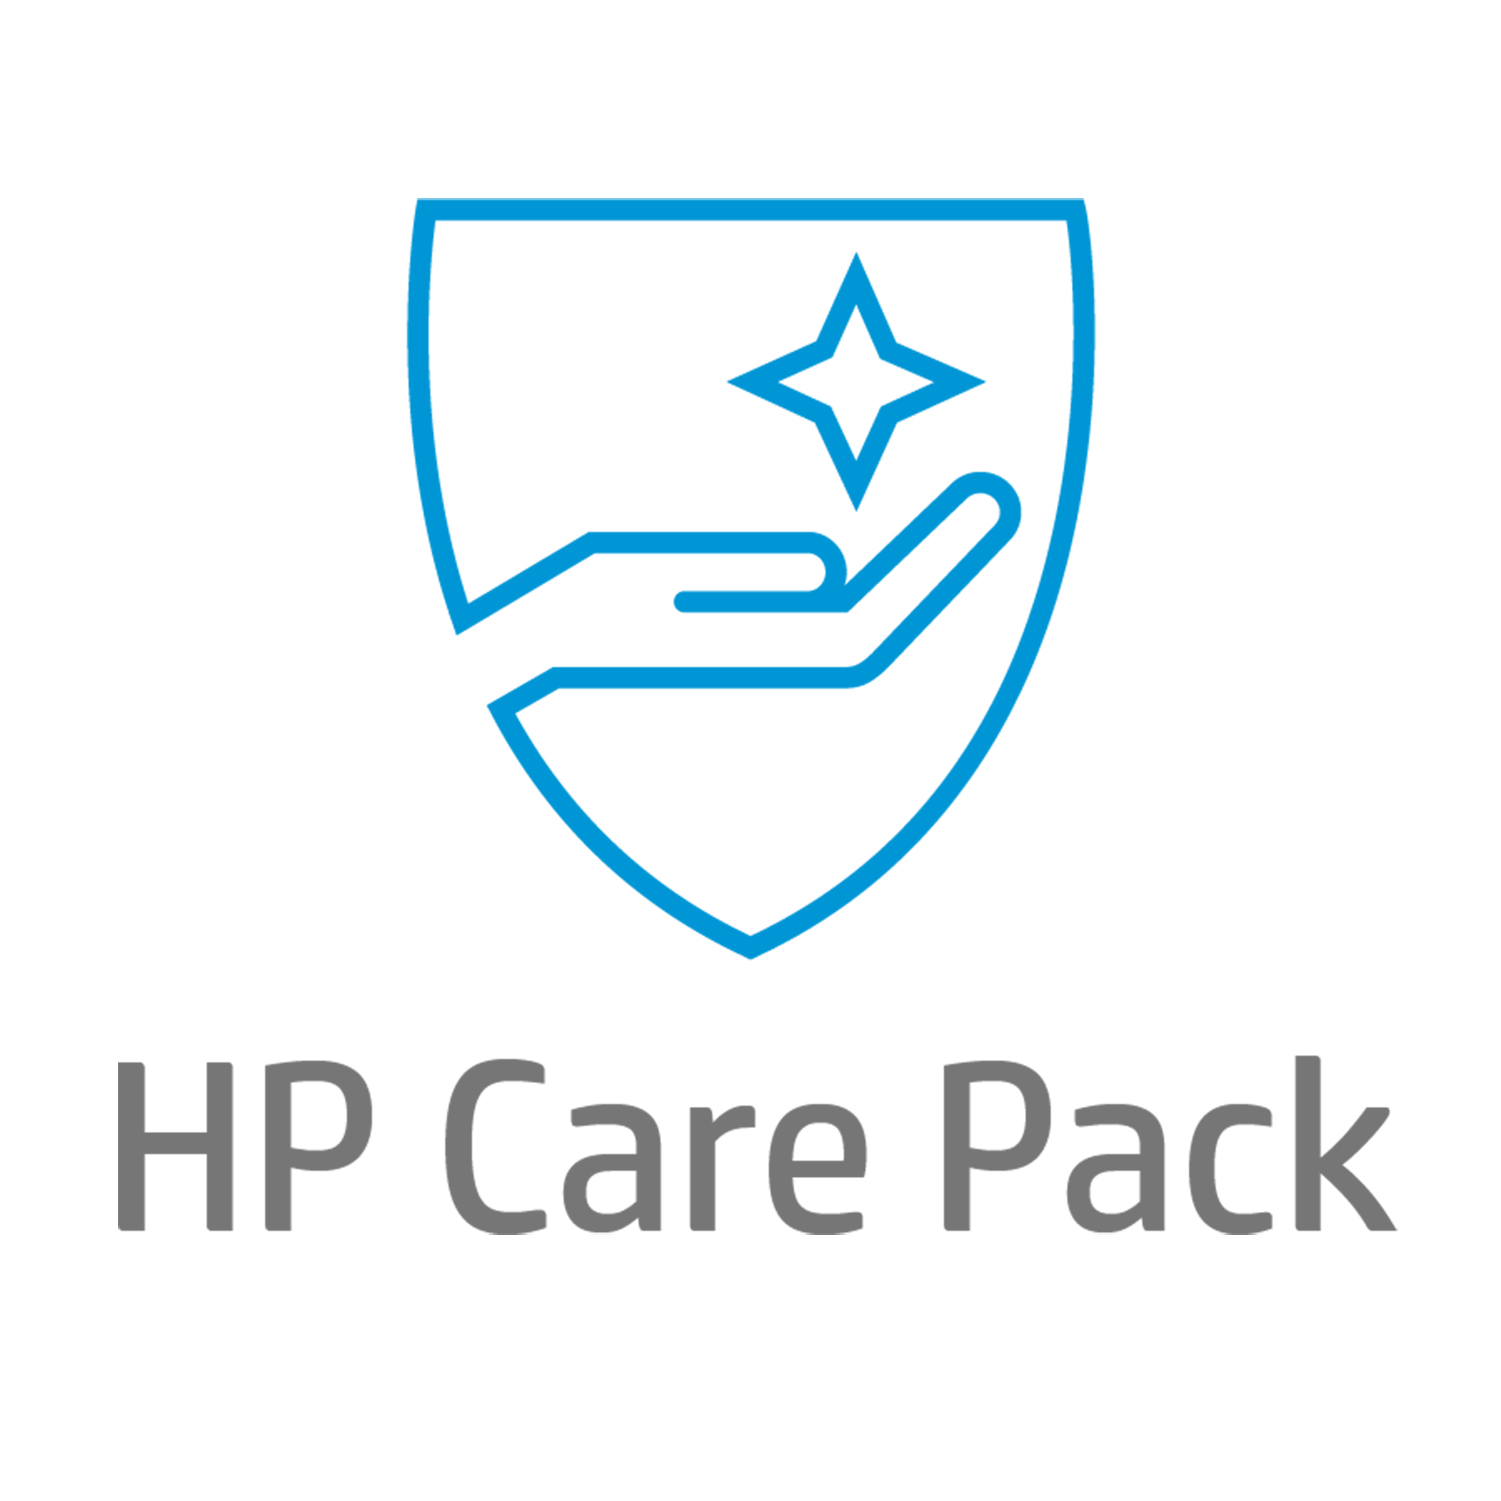 HP 4 year Next Business Day Onsite Hardware Support w/Travel/ADP-G2 for Notebooks